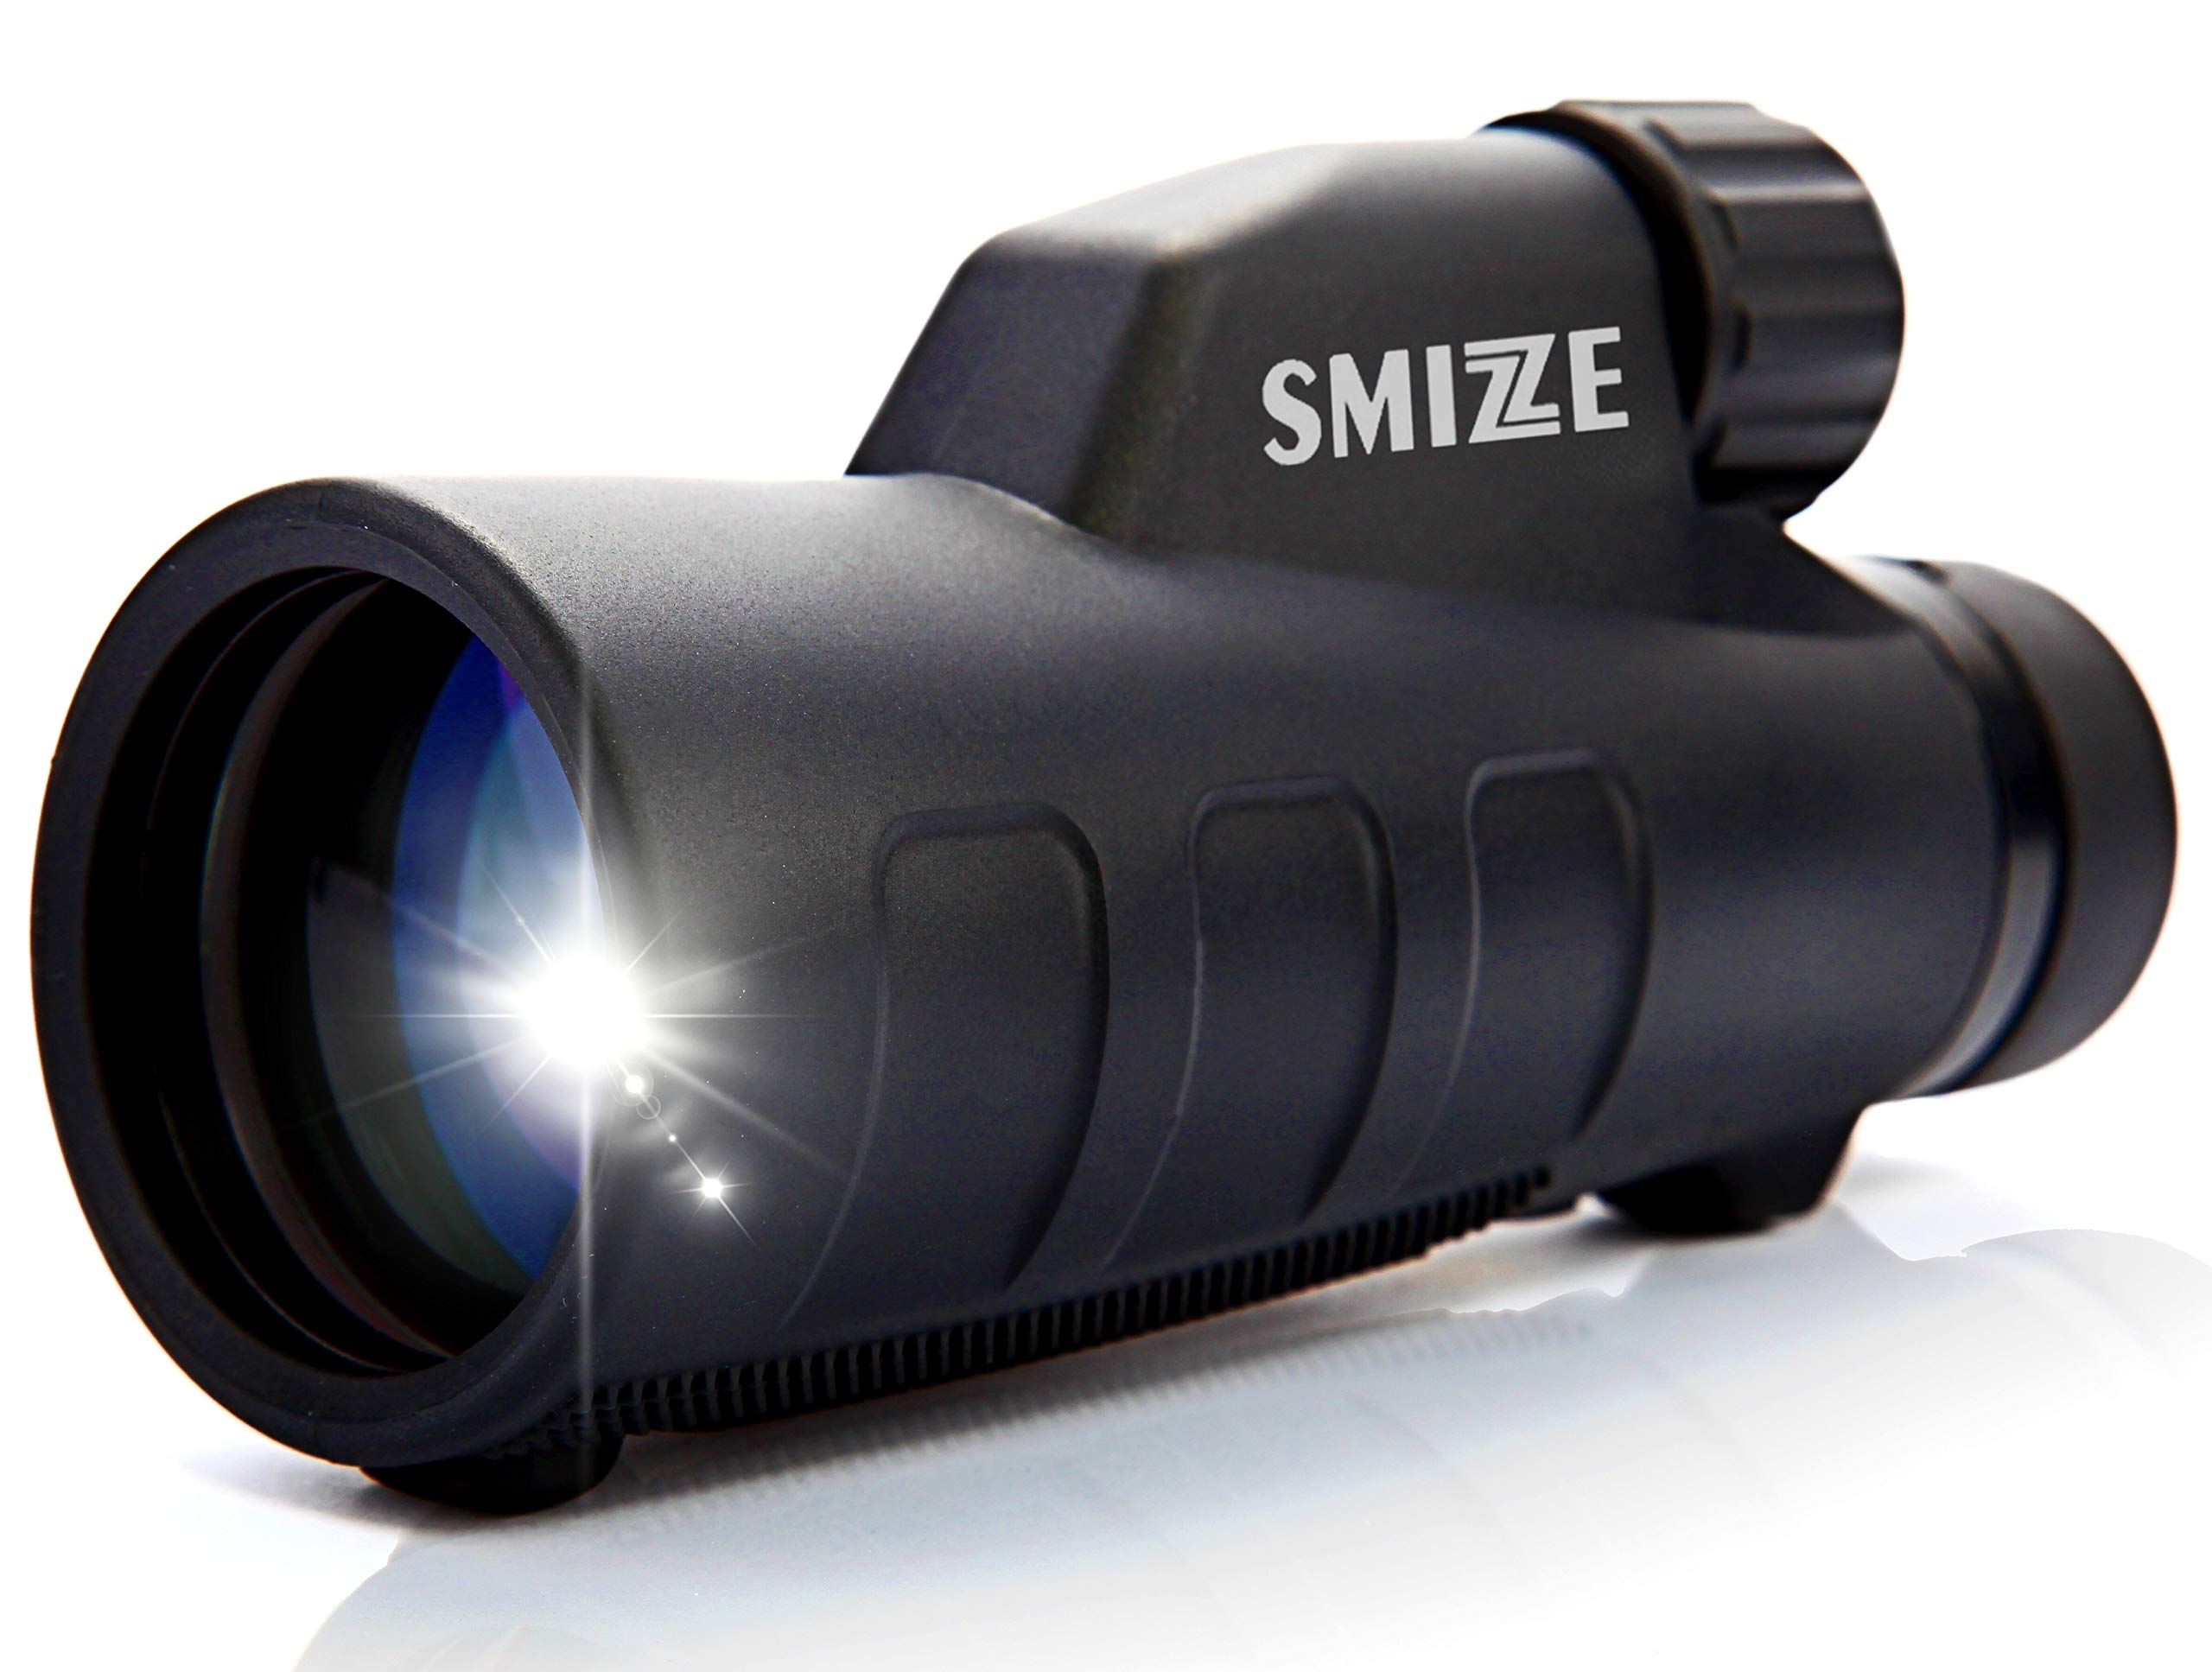 SMIZZE Monocular 12x50 - High Power Scope Fully Multi Coated Optical Lens and Bak-4 Prism - One Hand Focus - Waterproof Highly Durable Compact Telescope for Bird Watching Hunting Travel and Work by SMIZZE